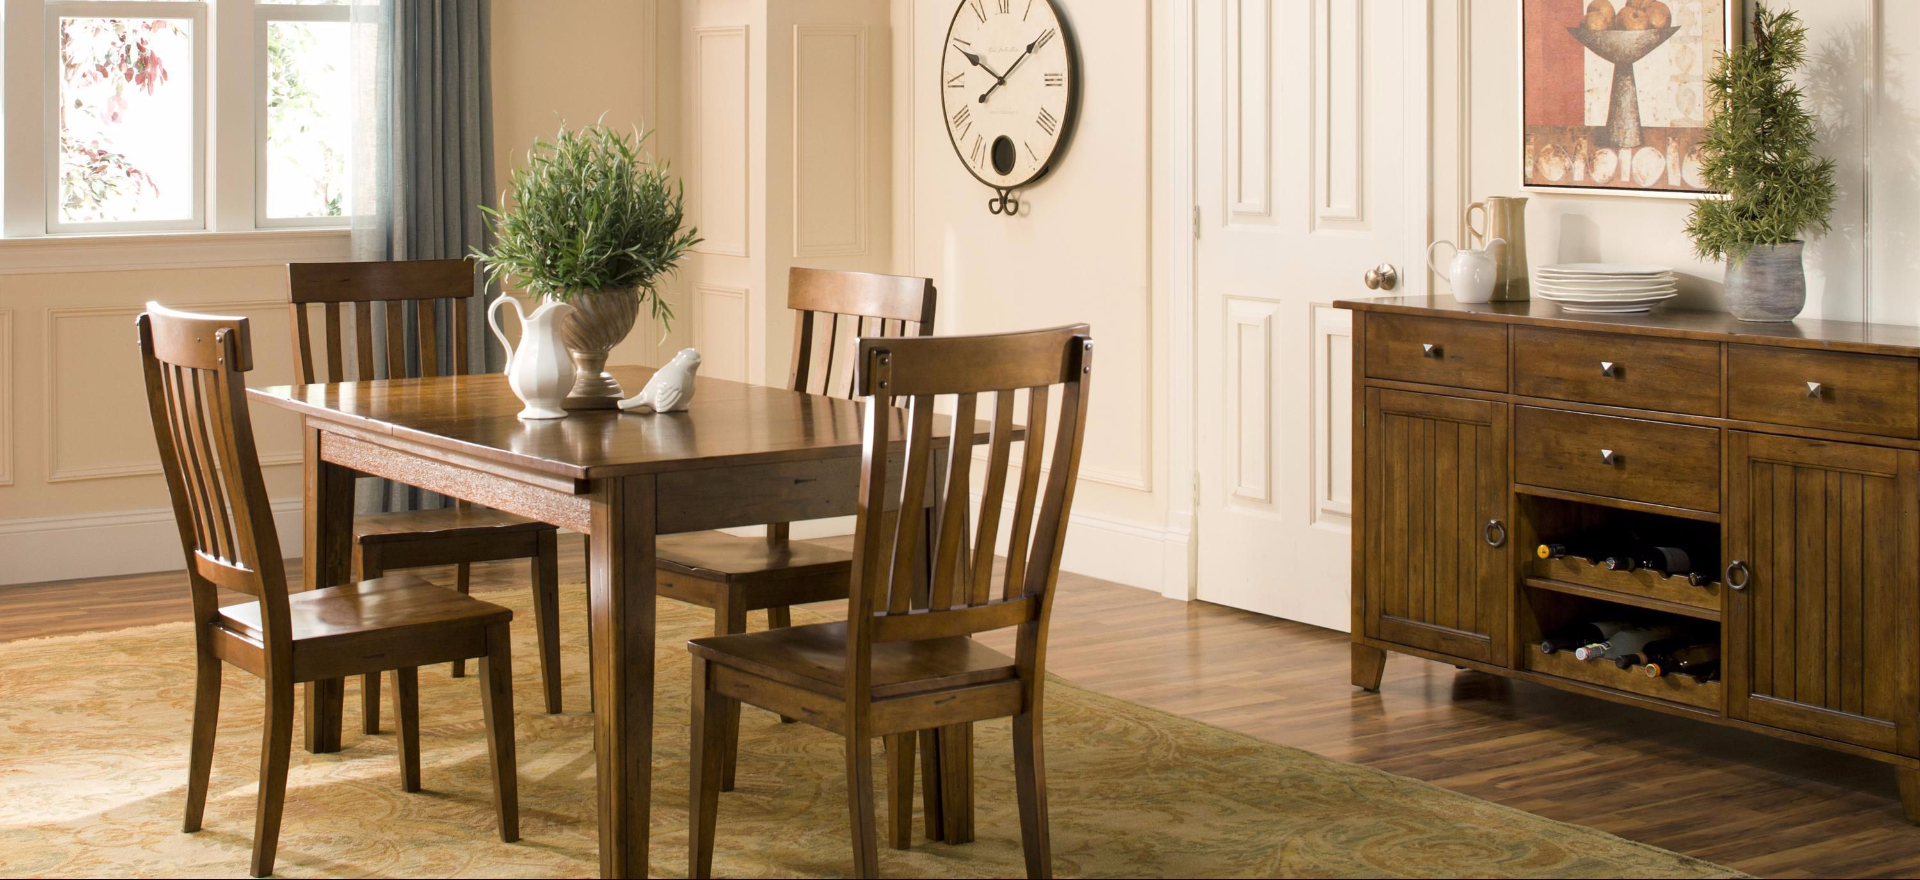 How To Choose The Right Dining Table For Your Home – The New In Most Recent Rae Round Pedestal Dining Tables (View 9 of 25)